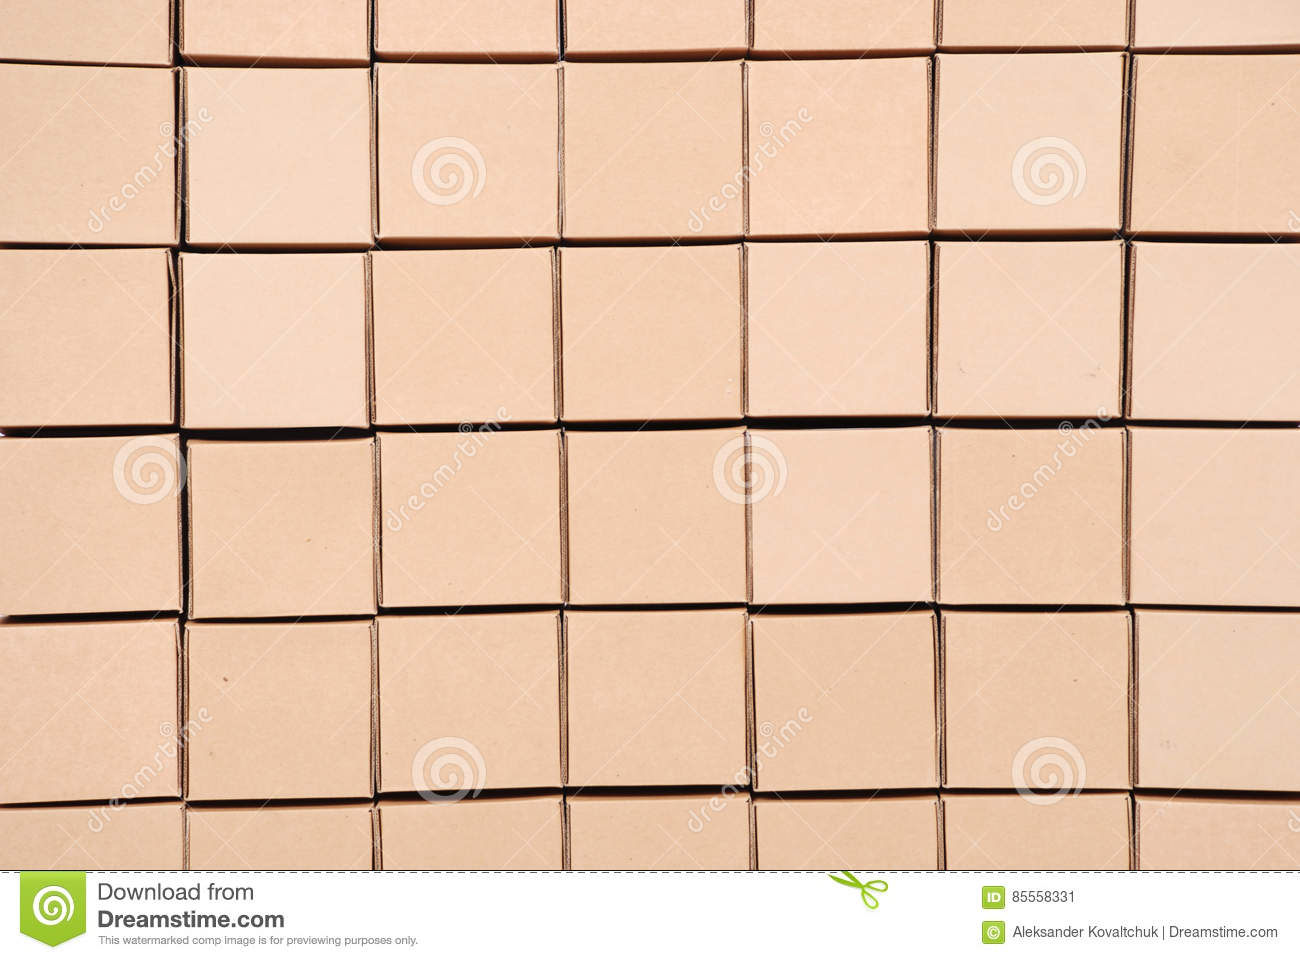 Brown-Farbe alle